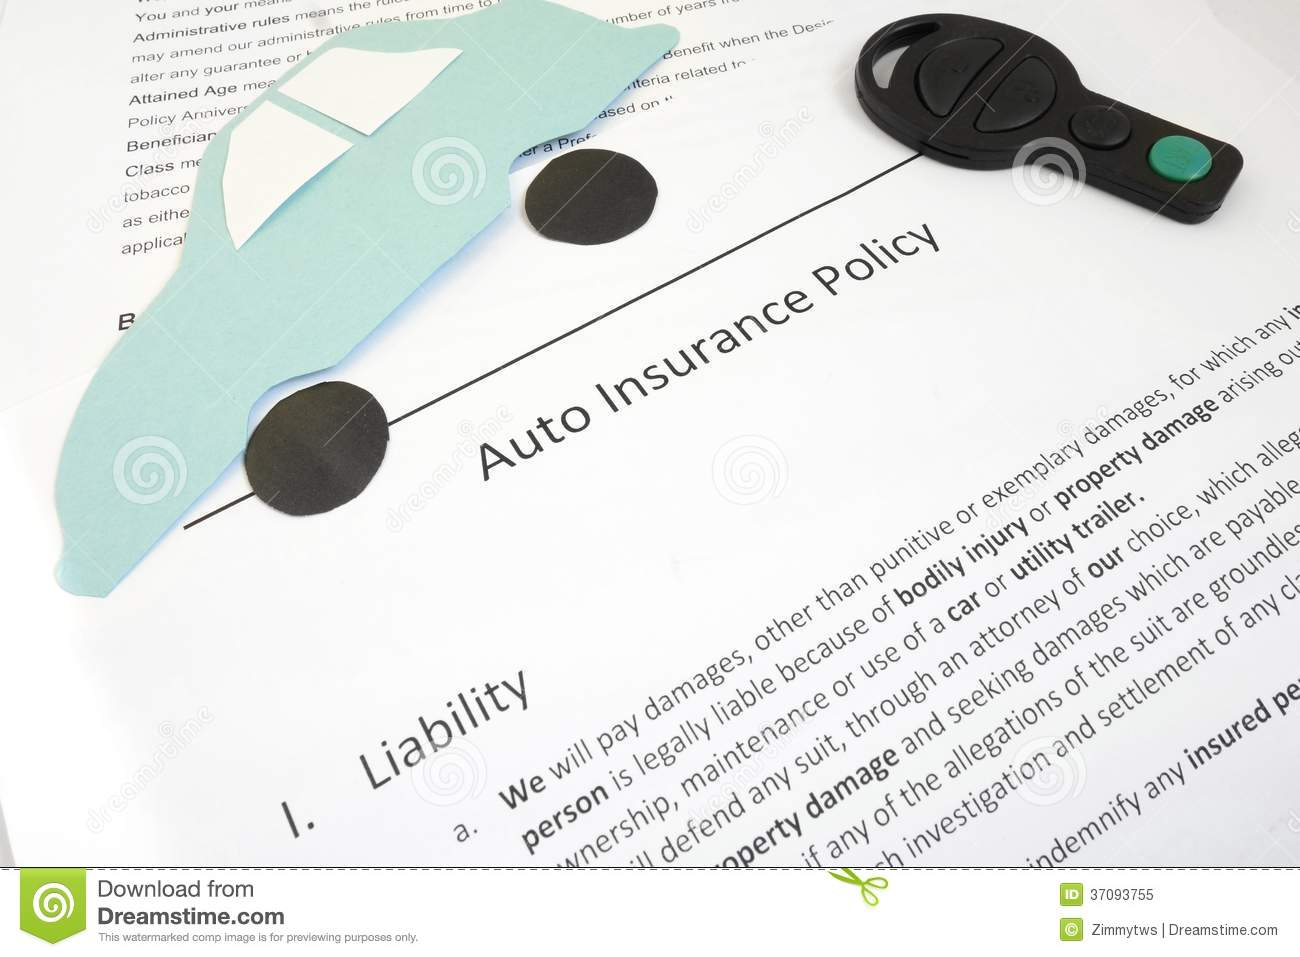 how to get replacement insurance papers